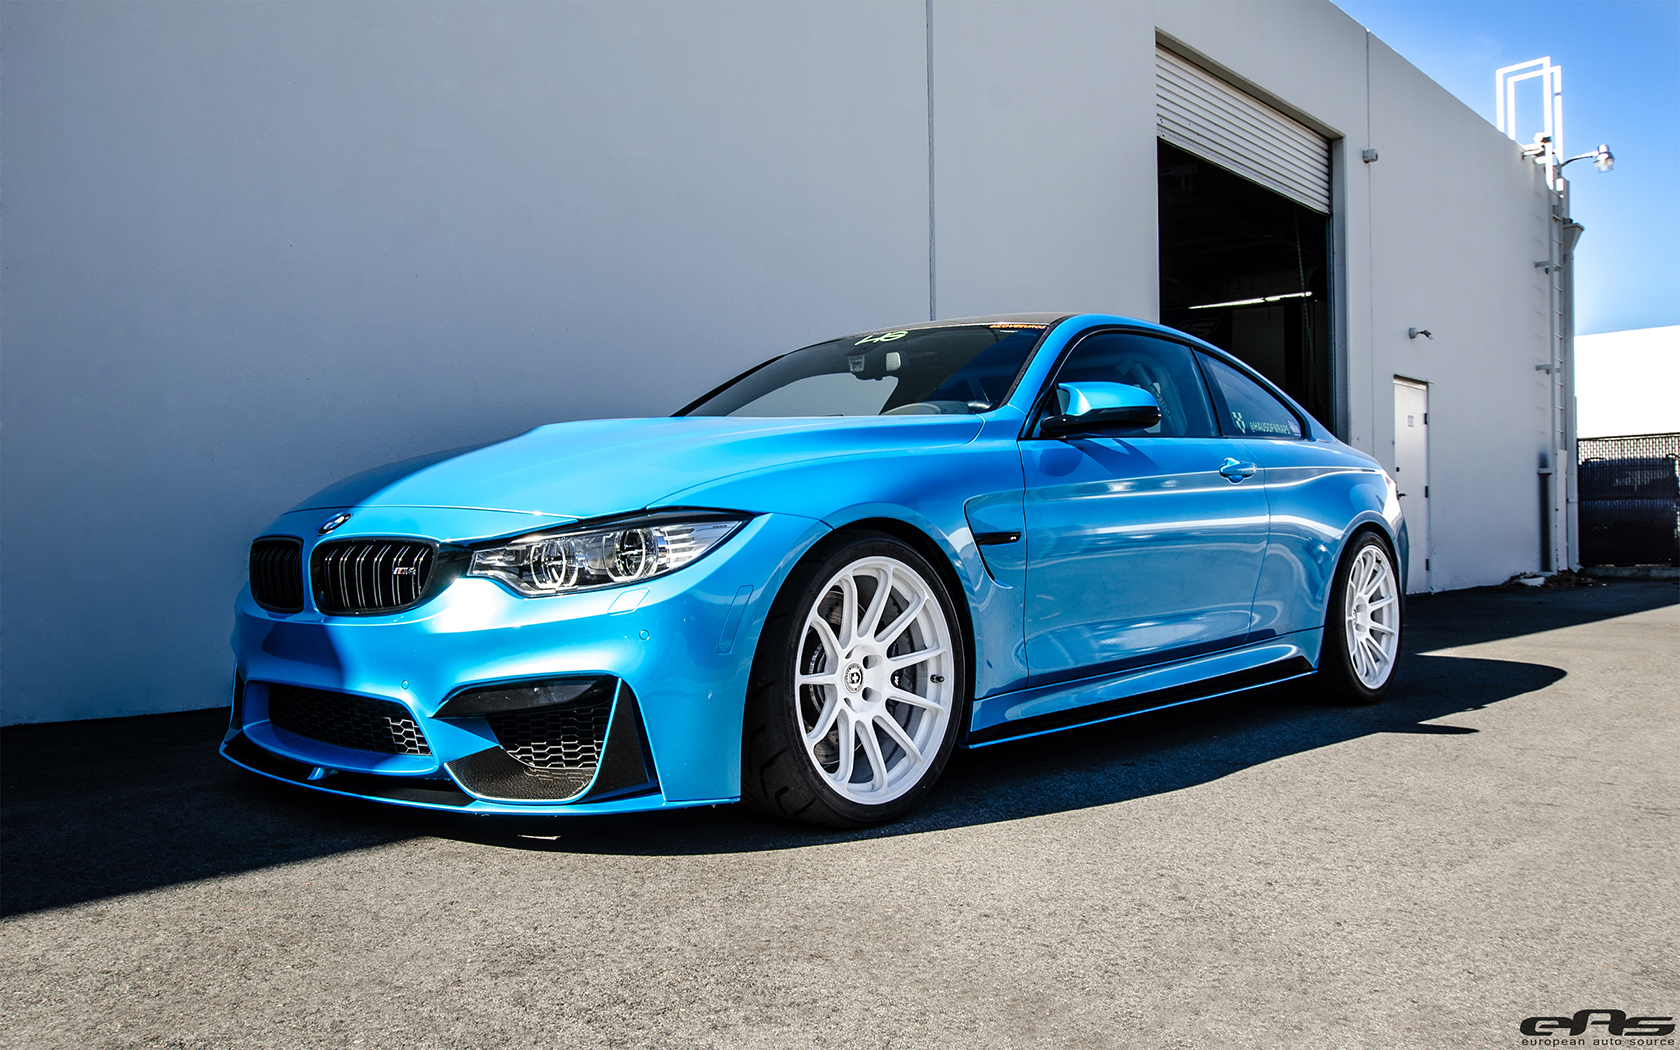 Pearlescent Mexico Blue BMW F82 M4 Image 1